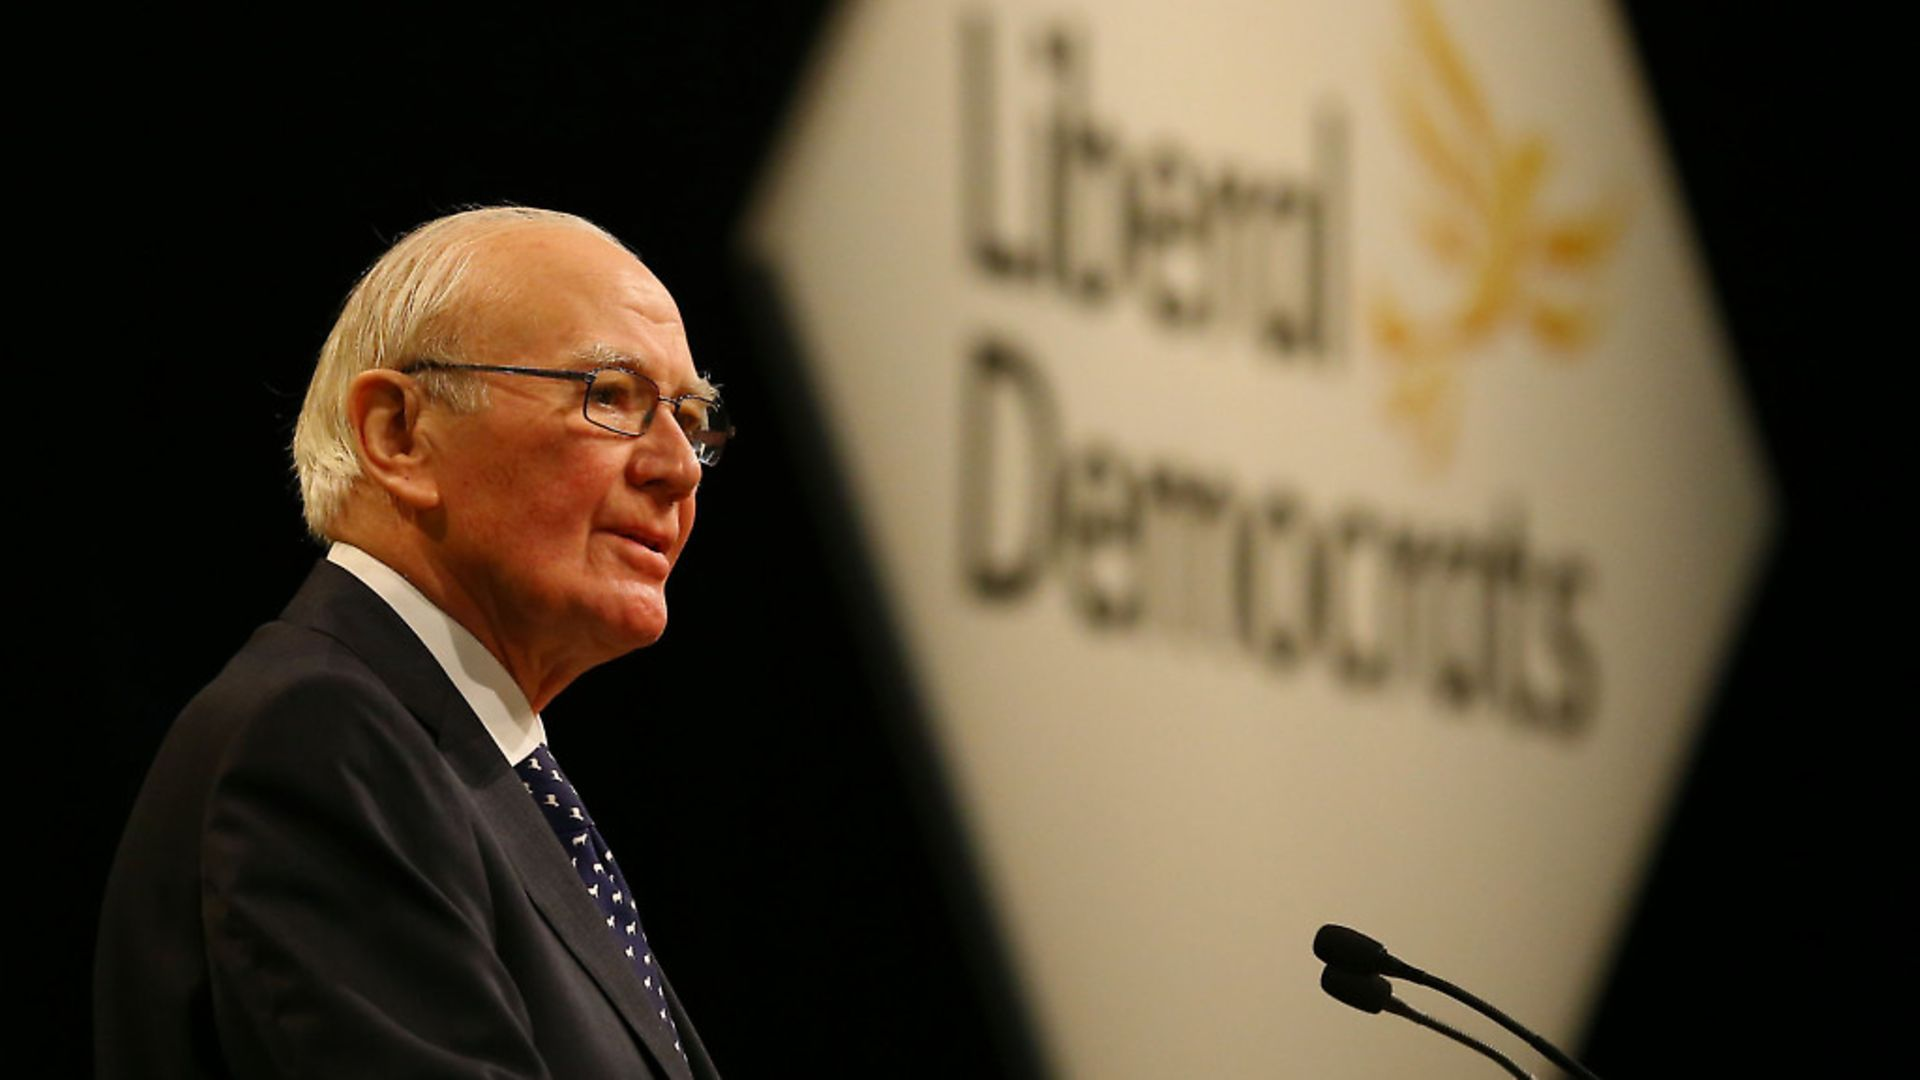 Sir Menzies Campbell delivers a speech, during a debate on Europe, on the third day of the Liberal Democrats Autumn Conference Photo: PA - Credit: PA Archive/PA Images